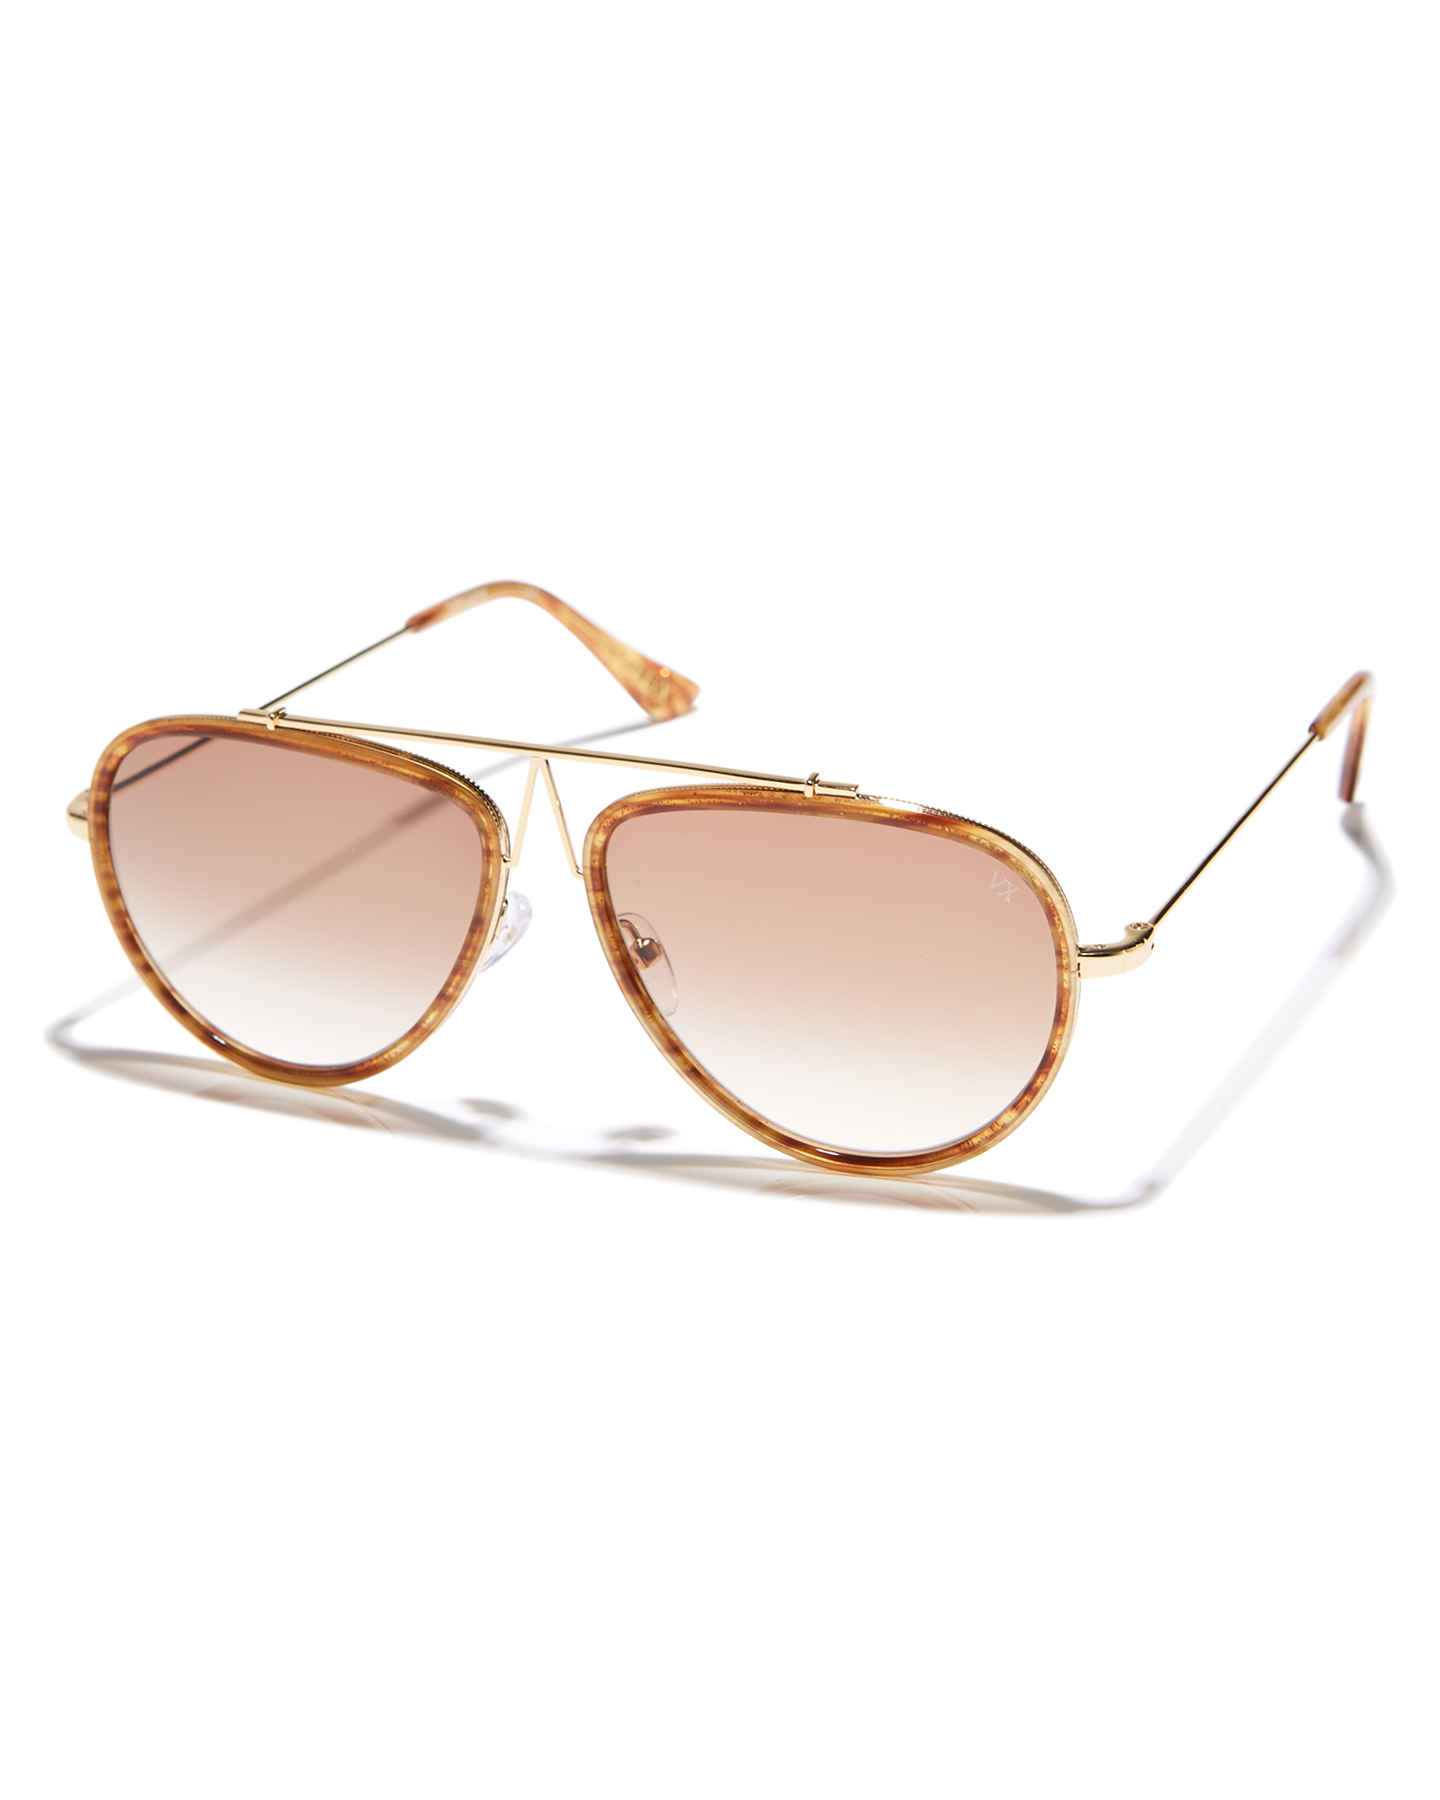 c27850def5 GLITTER WOOD WOMENS ACCESSORIES VIEUX EYEWEAR SUNGLASSES - VX005BGLTR ...